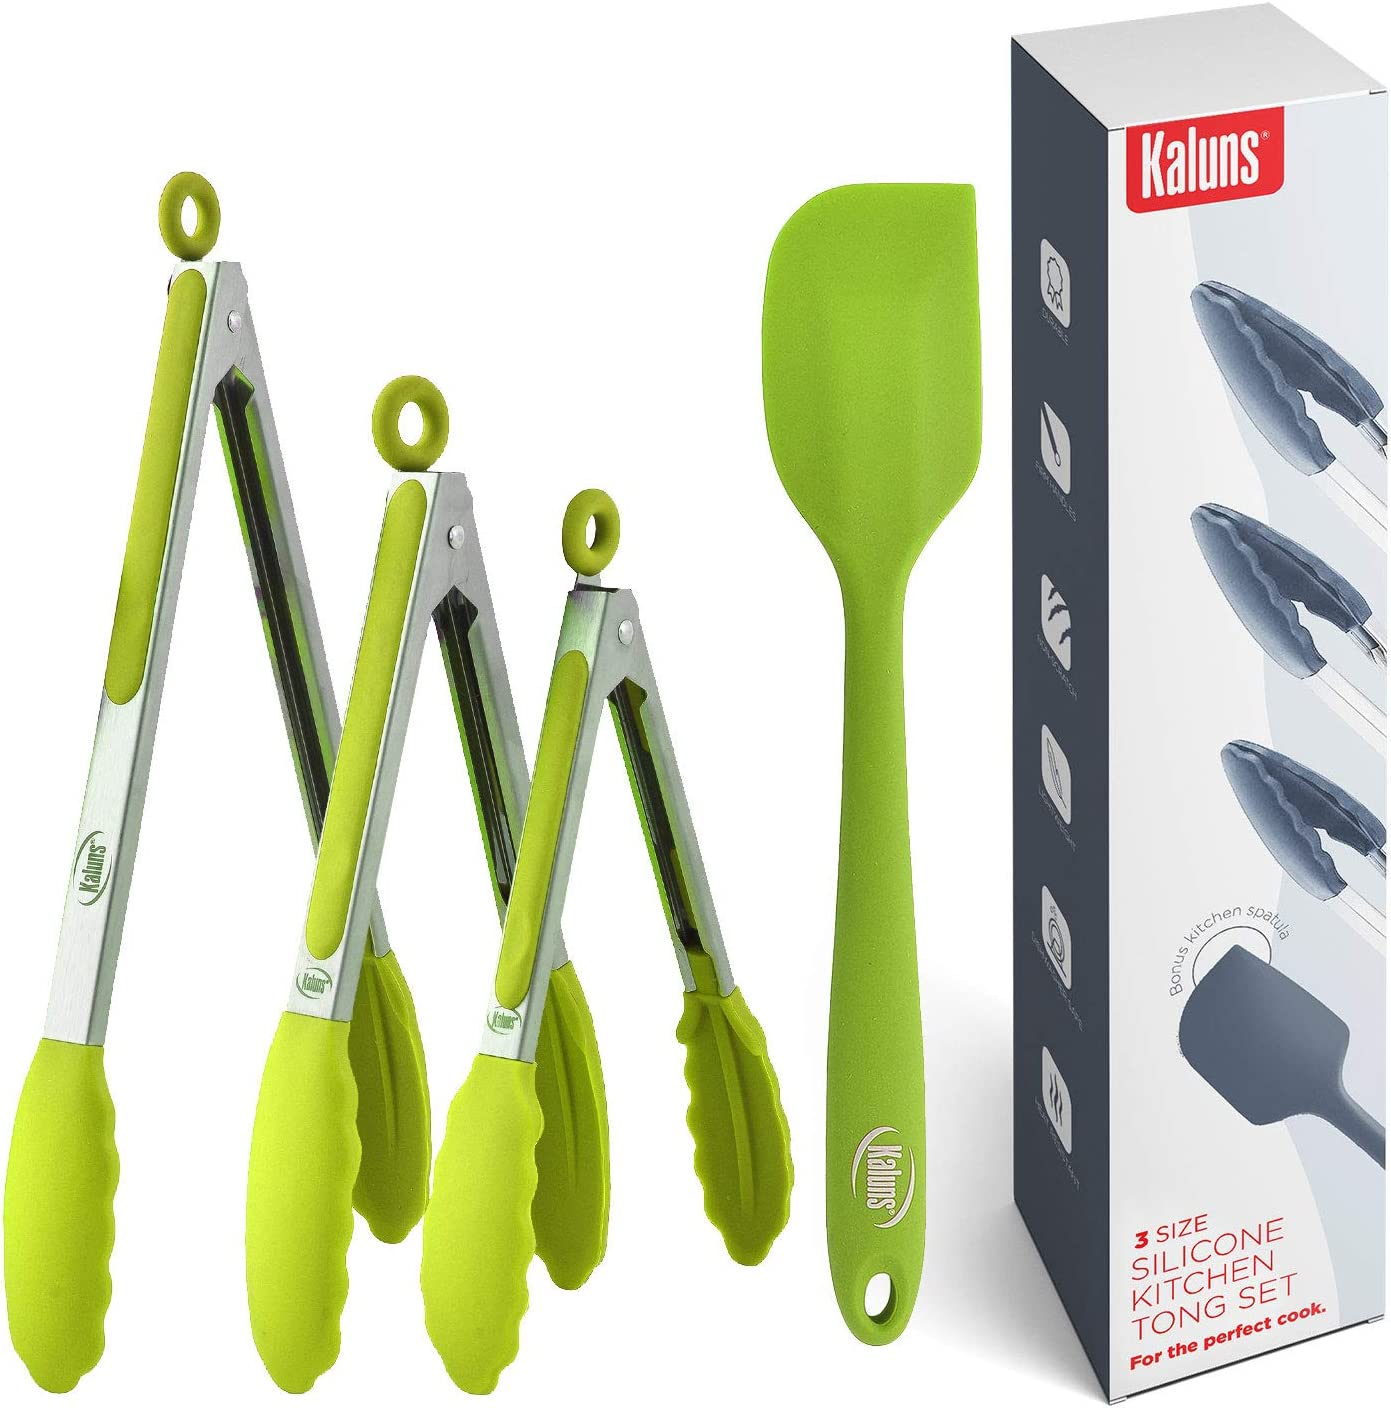 Kaluns Kitchen Tongs for Cooking, Non Stick Silicone Tip Stainless Steel Tongs, Set of Four 7,9, and 12 Inch Tong Plus Silicone Spatula Non-stick, Heat Resistant Serving Utensils